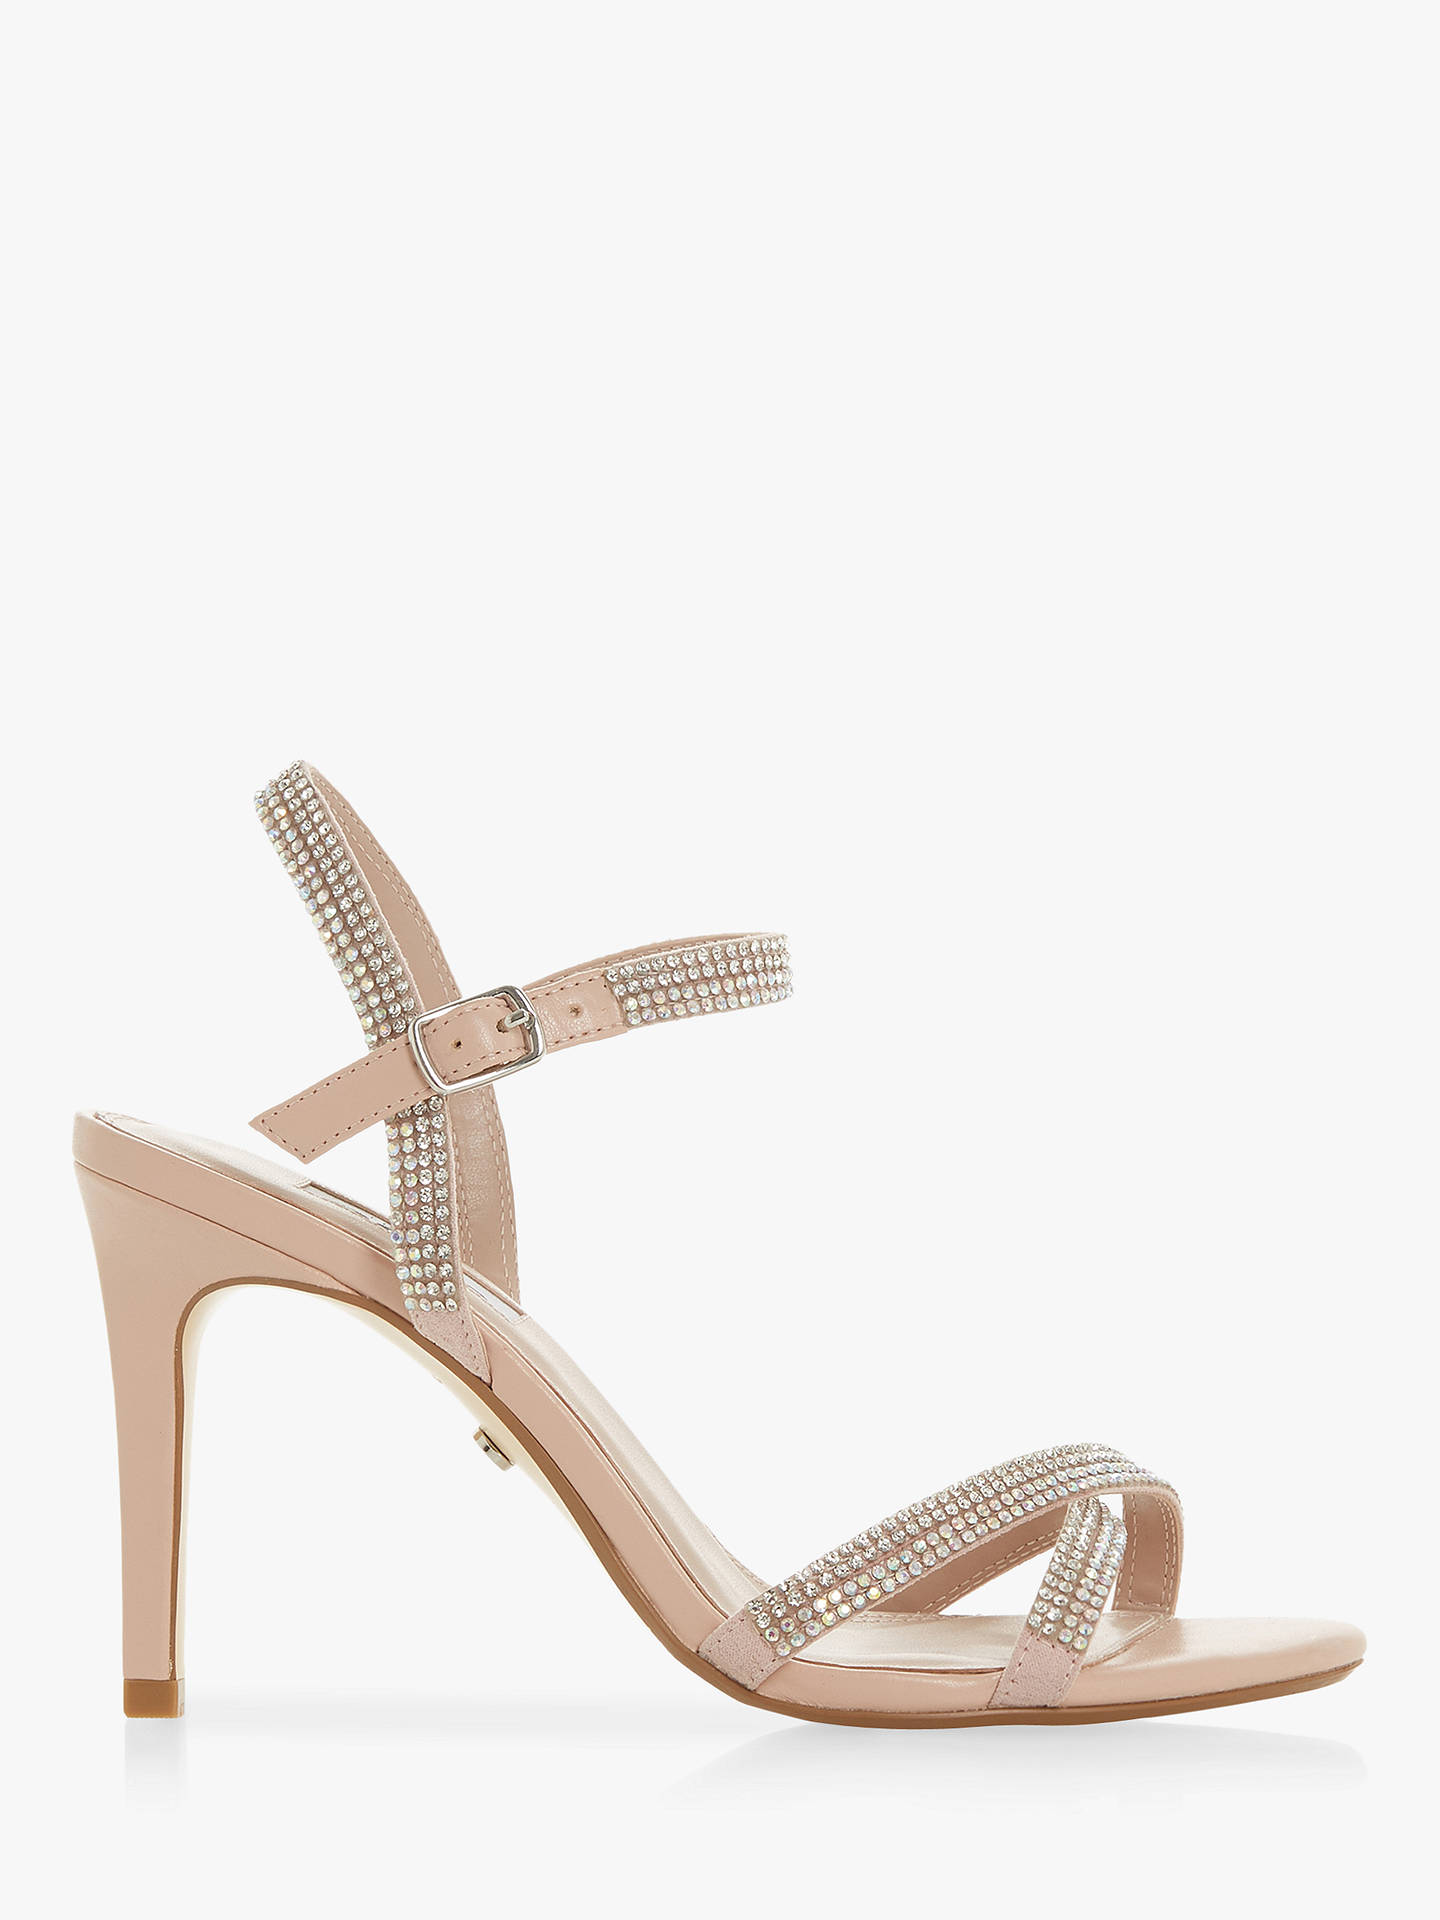 825a09501642ff Dune Magdalenna Jewel Embellished Sandals at John Lewis   Partners